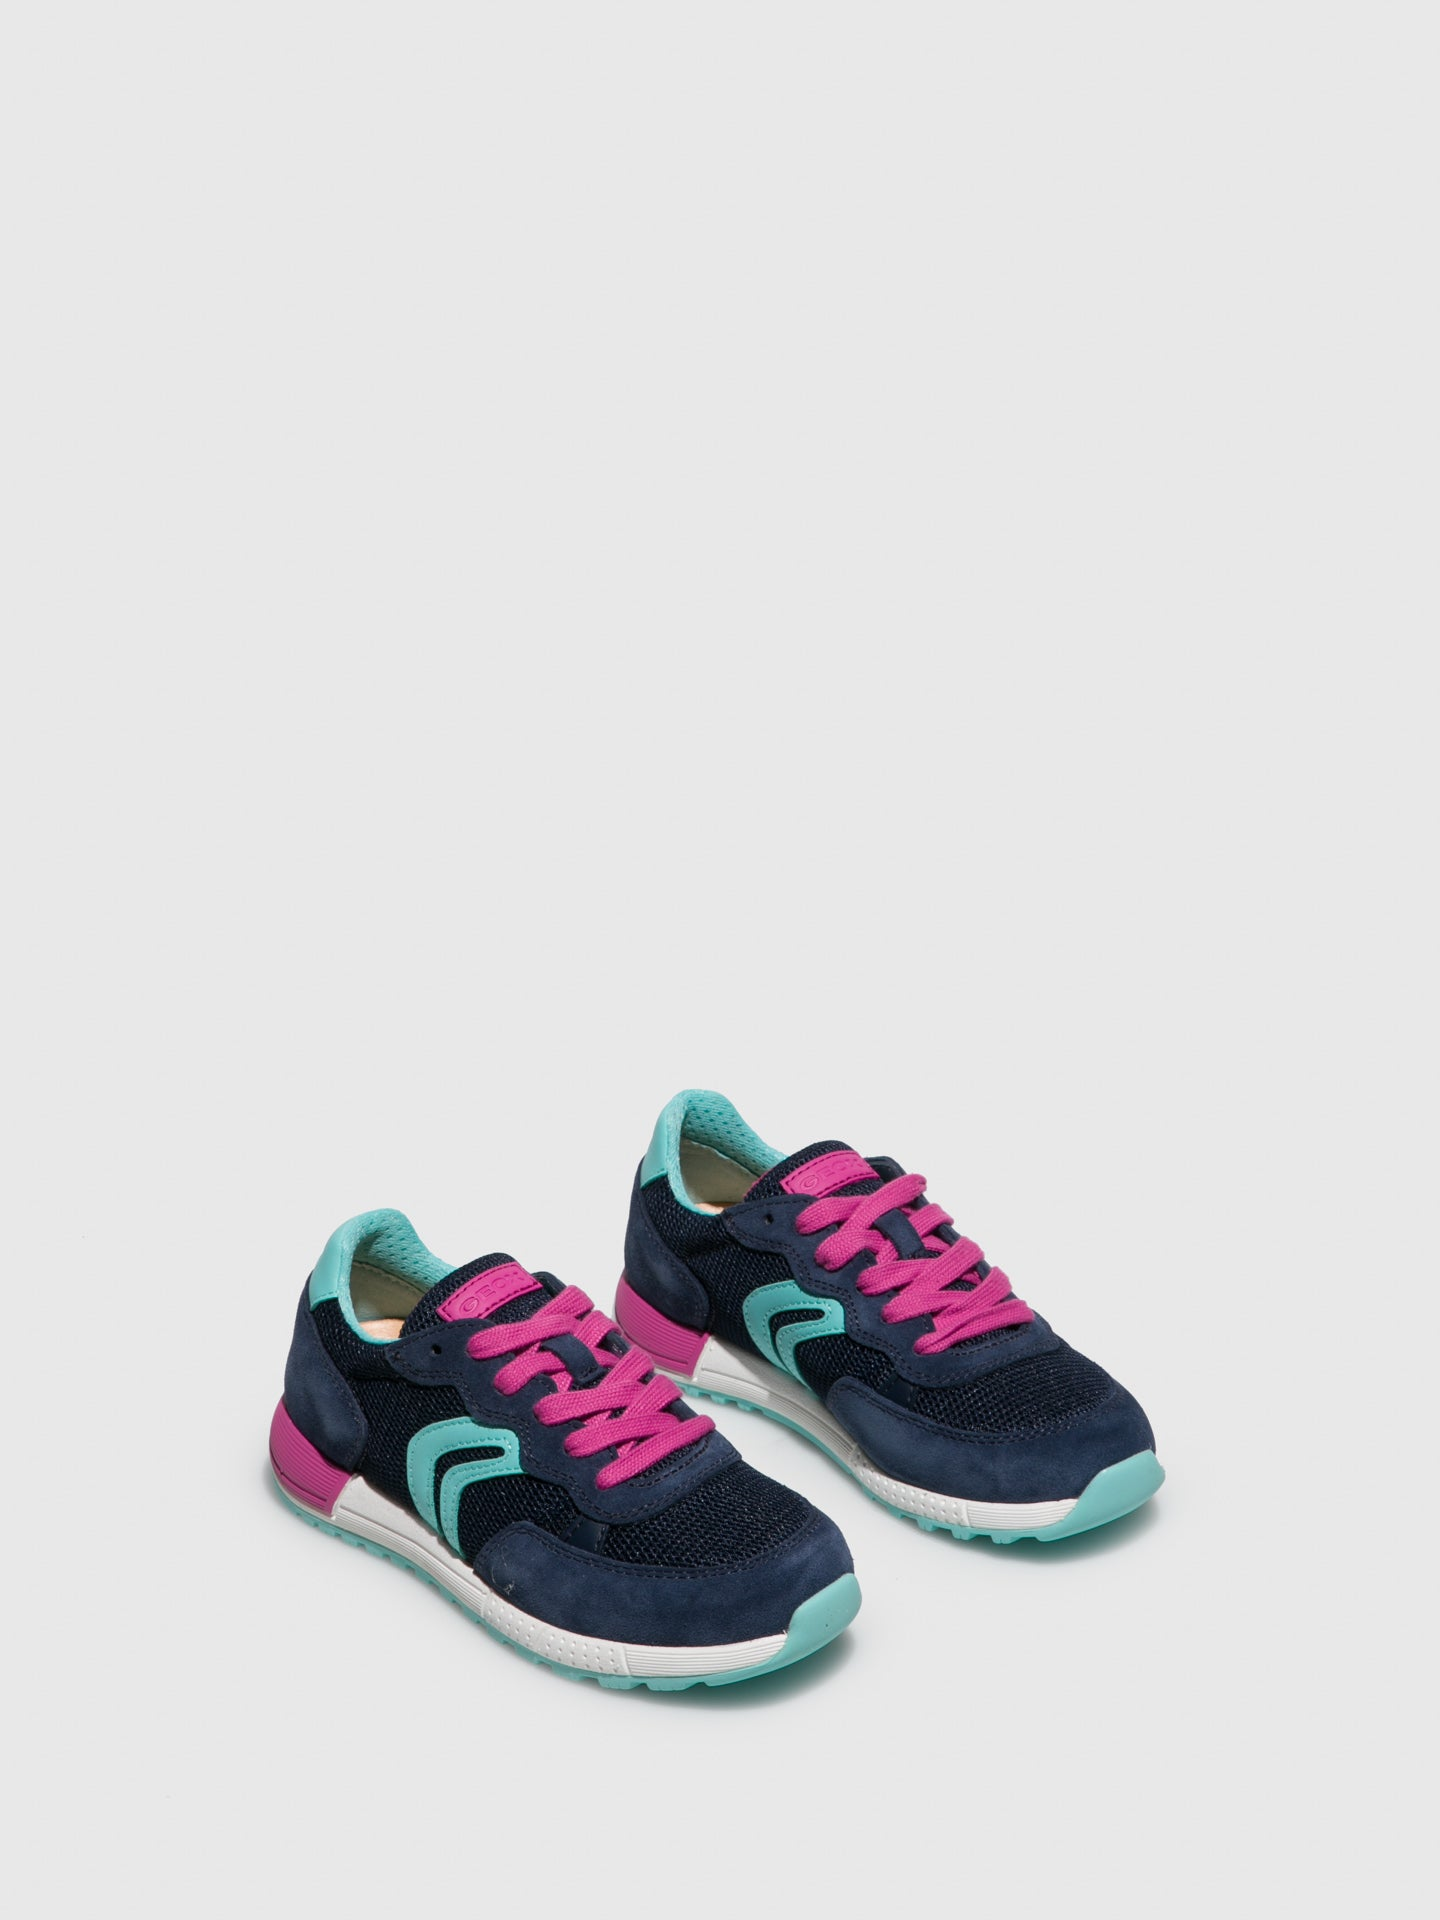 Geox Blue Lace-up Trainers